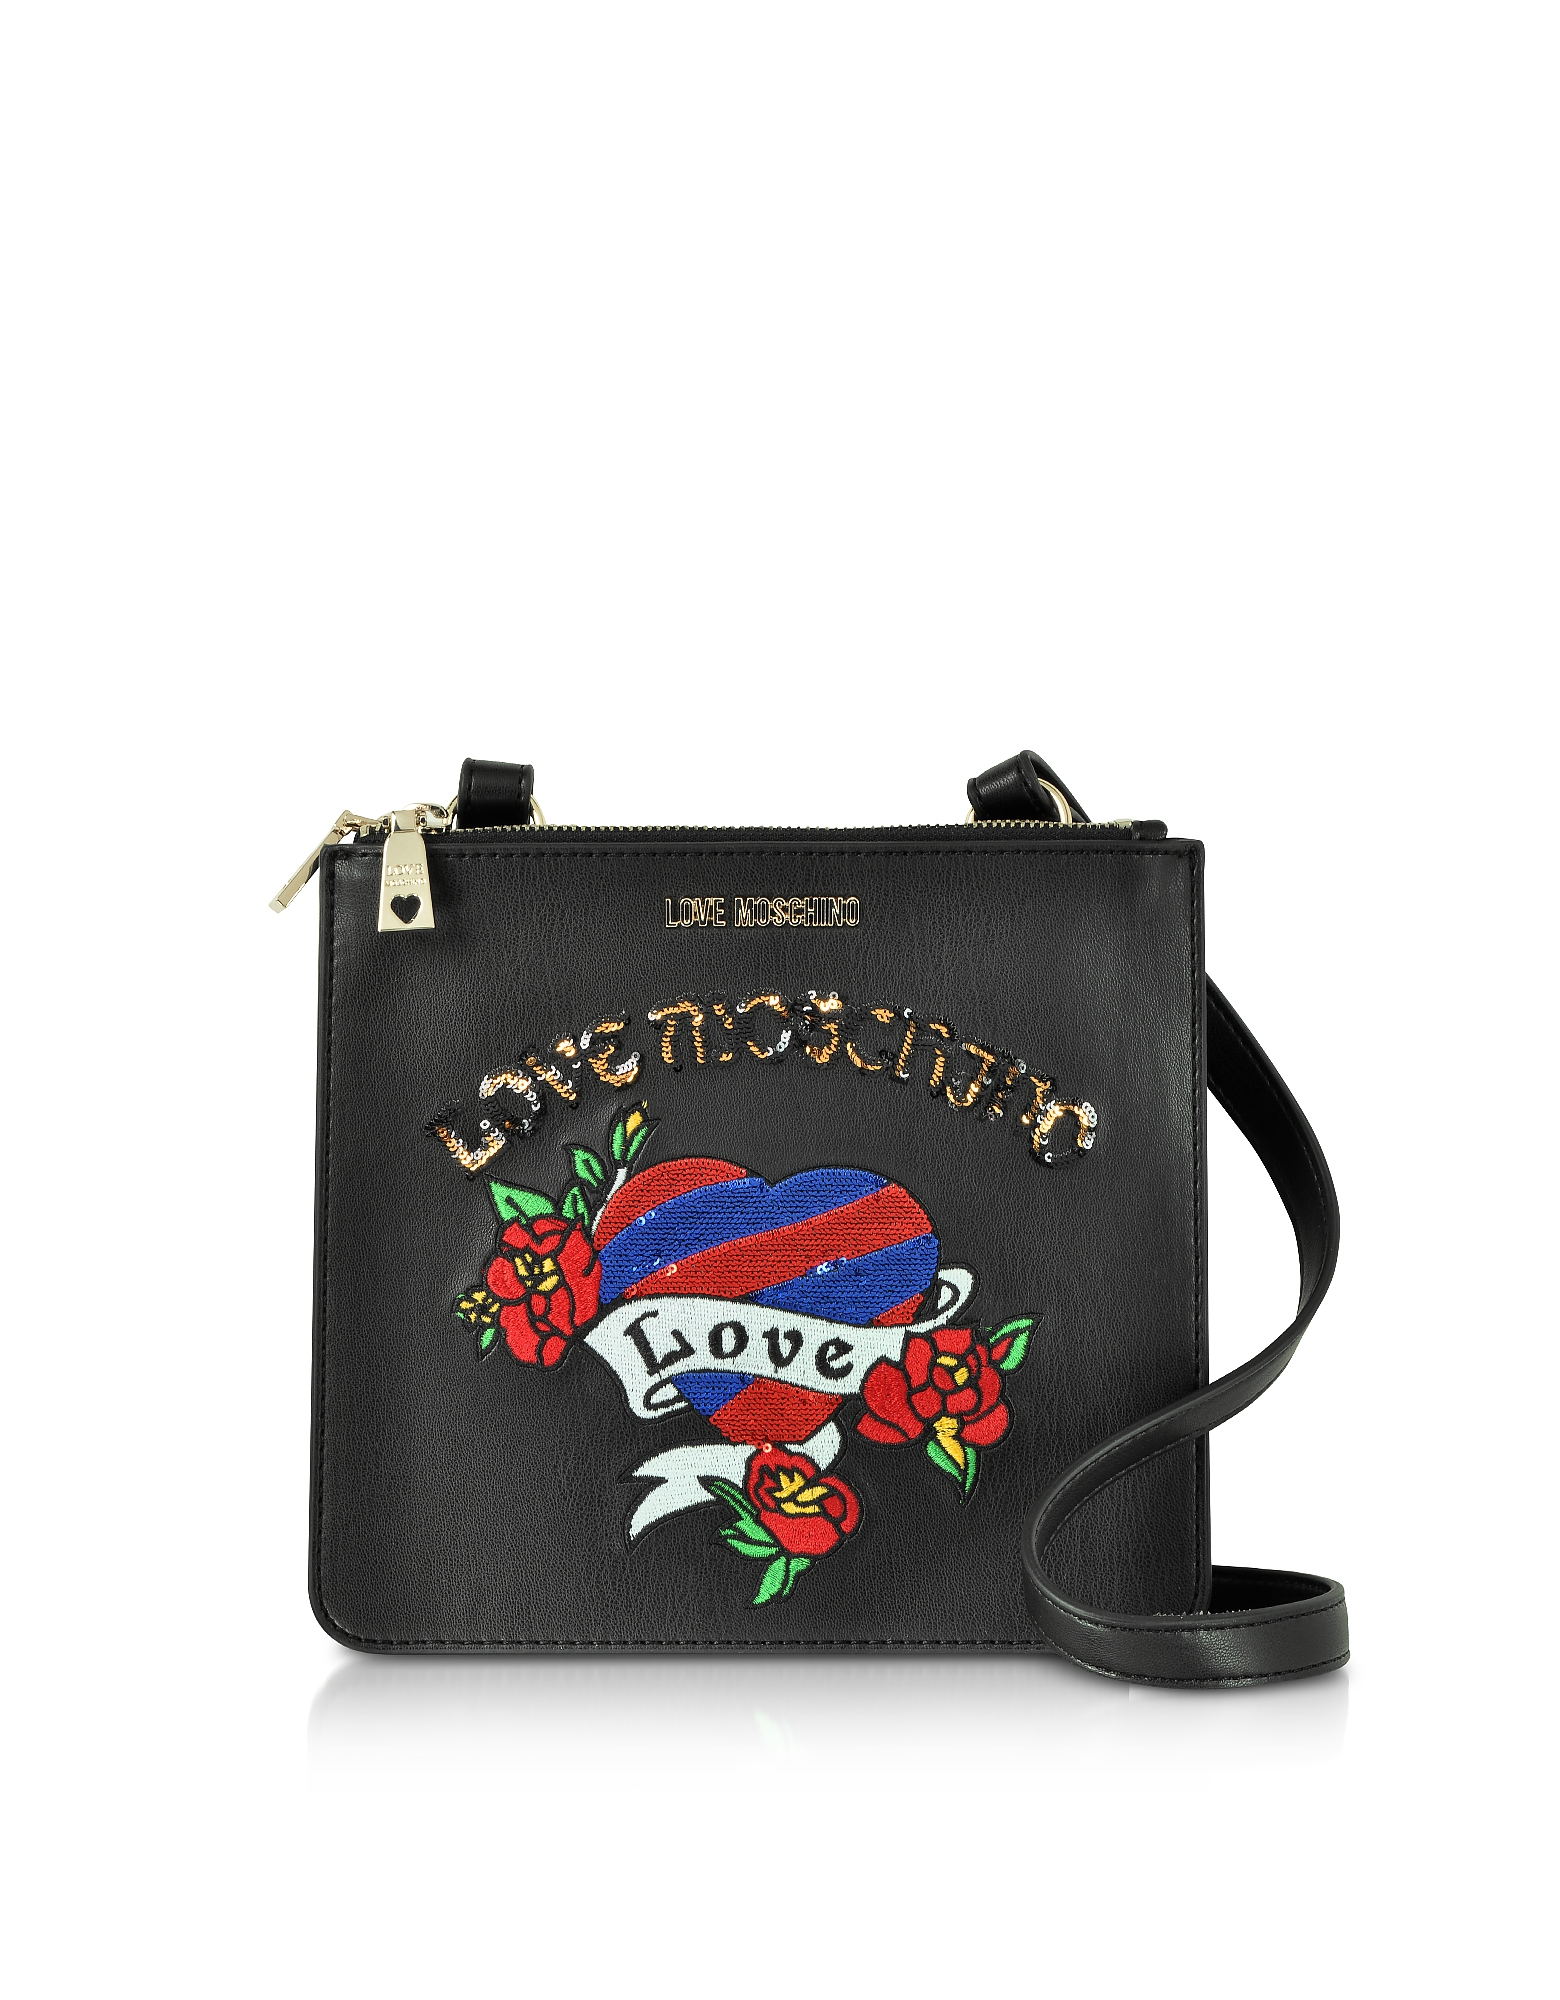 Image of Love Moschino Designer Handbags, Black Love Embroidered Shoulder Bag